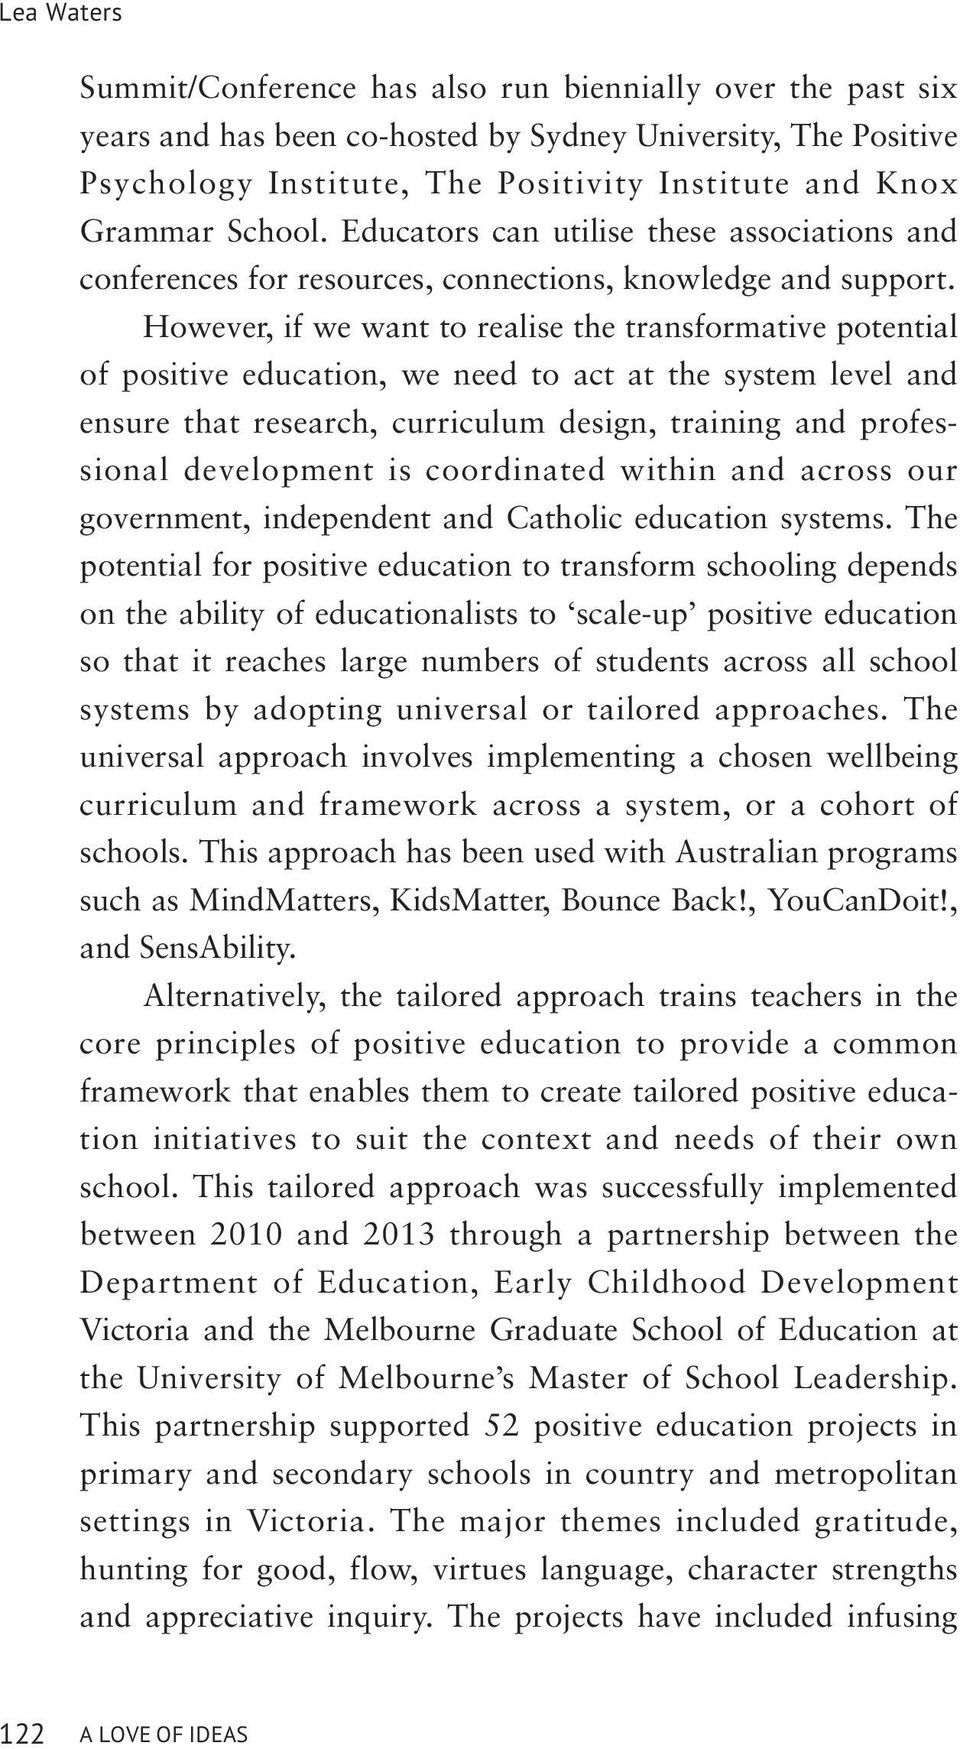 However, if we want to realise the transformative potential of positive education, we need to act at the system level and ensure that research, curriculum design, training and professional